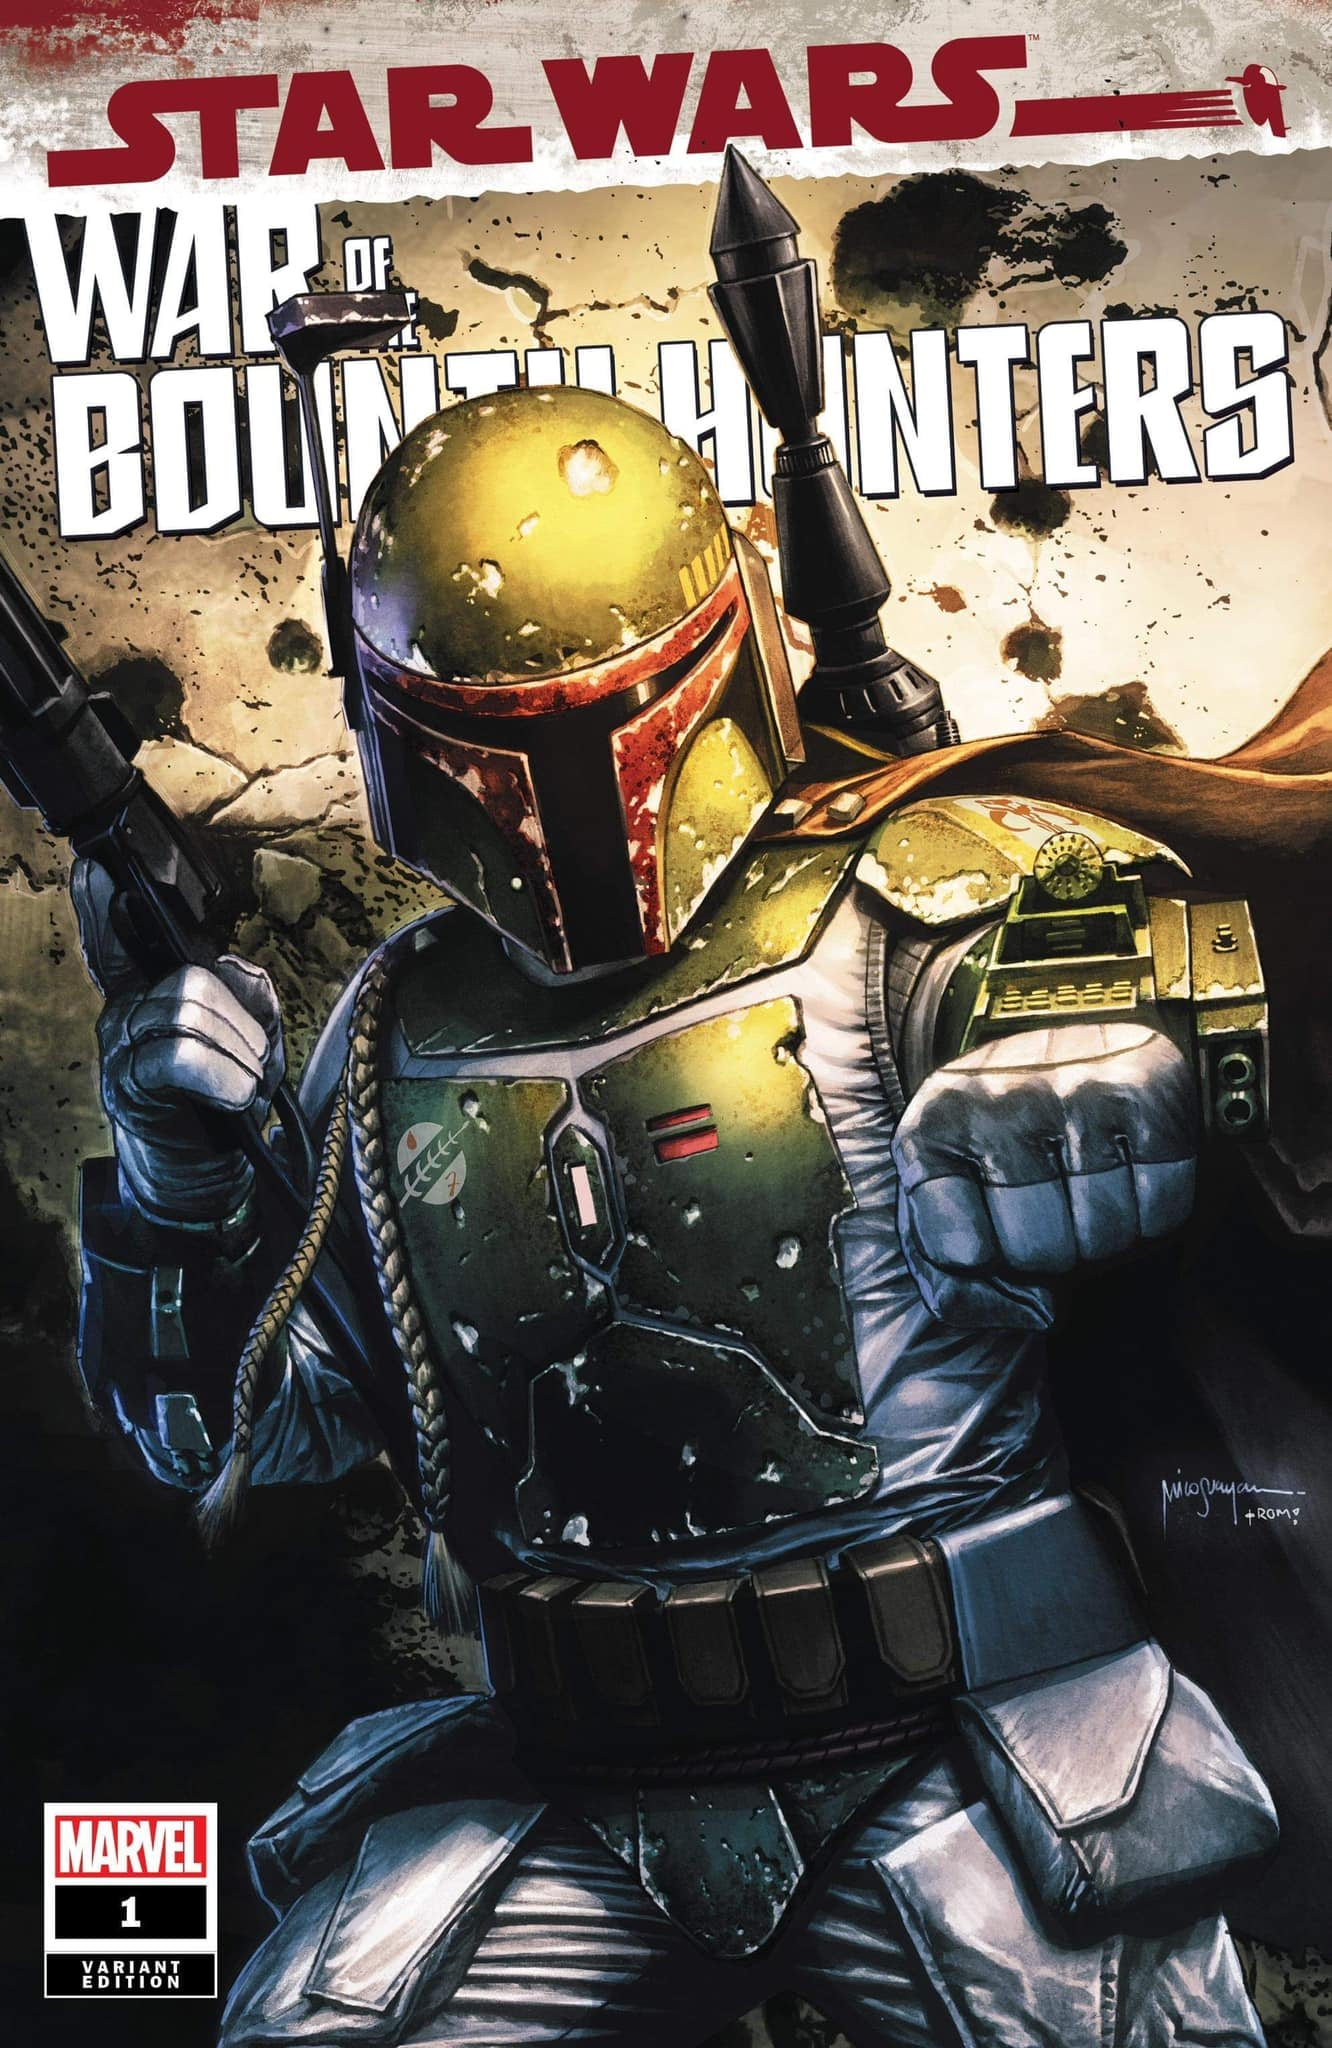 Star Wars: War of the Bounty Hunters 1 - Bigtime Collectibles Variant